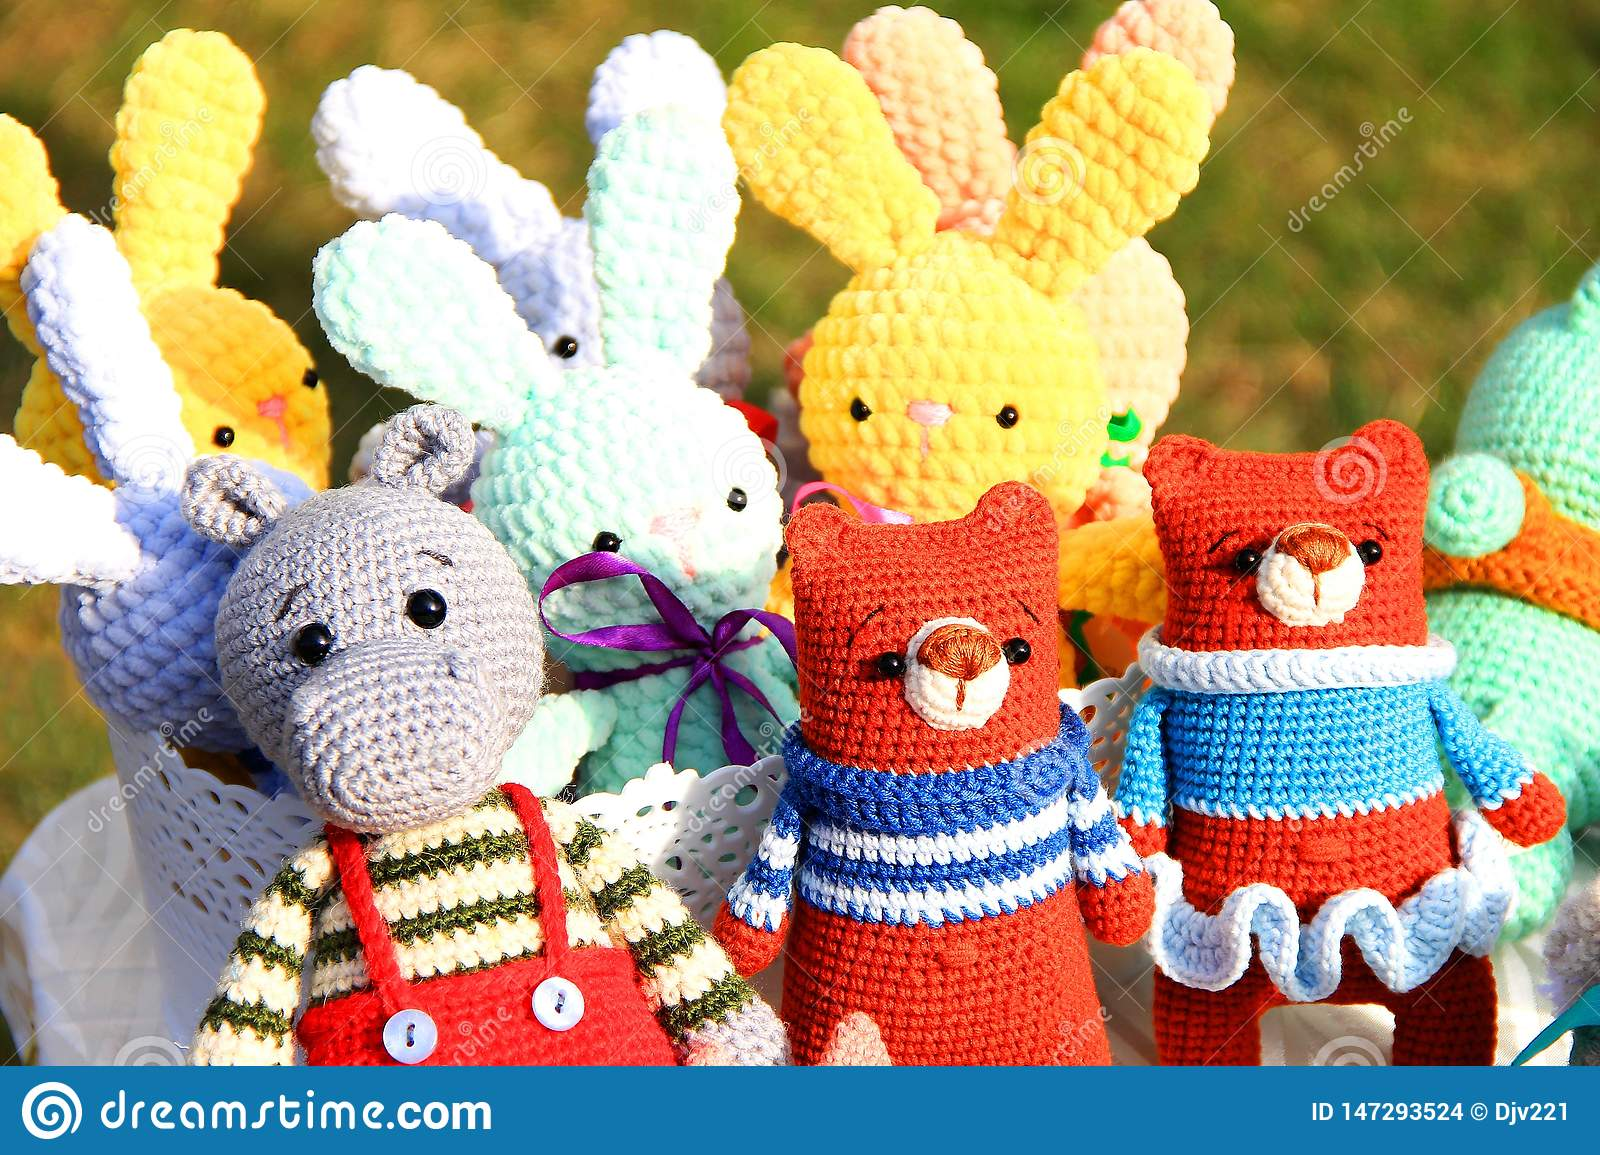 Handmade toys knitted, set of different animals